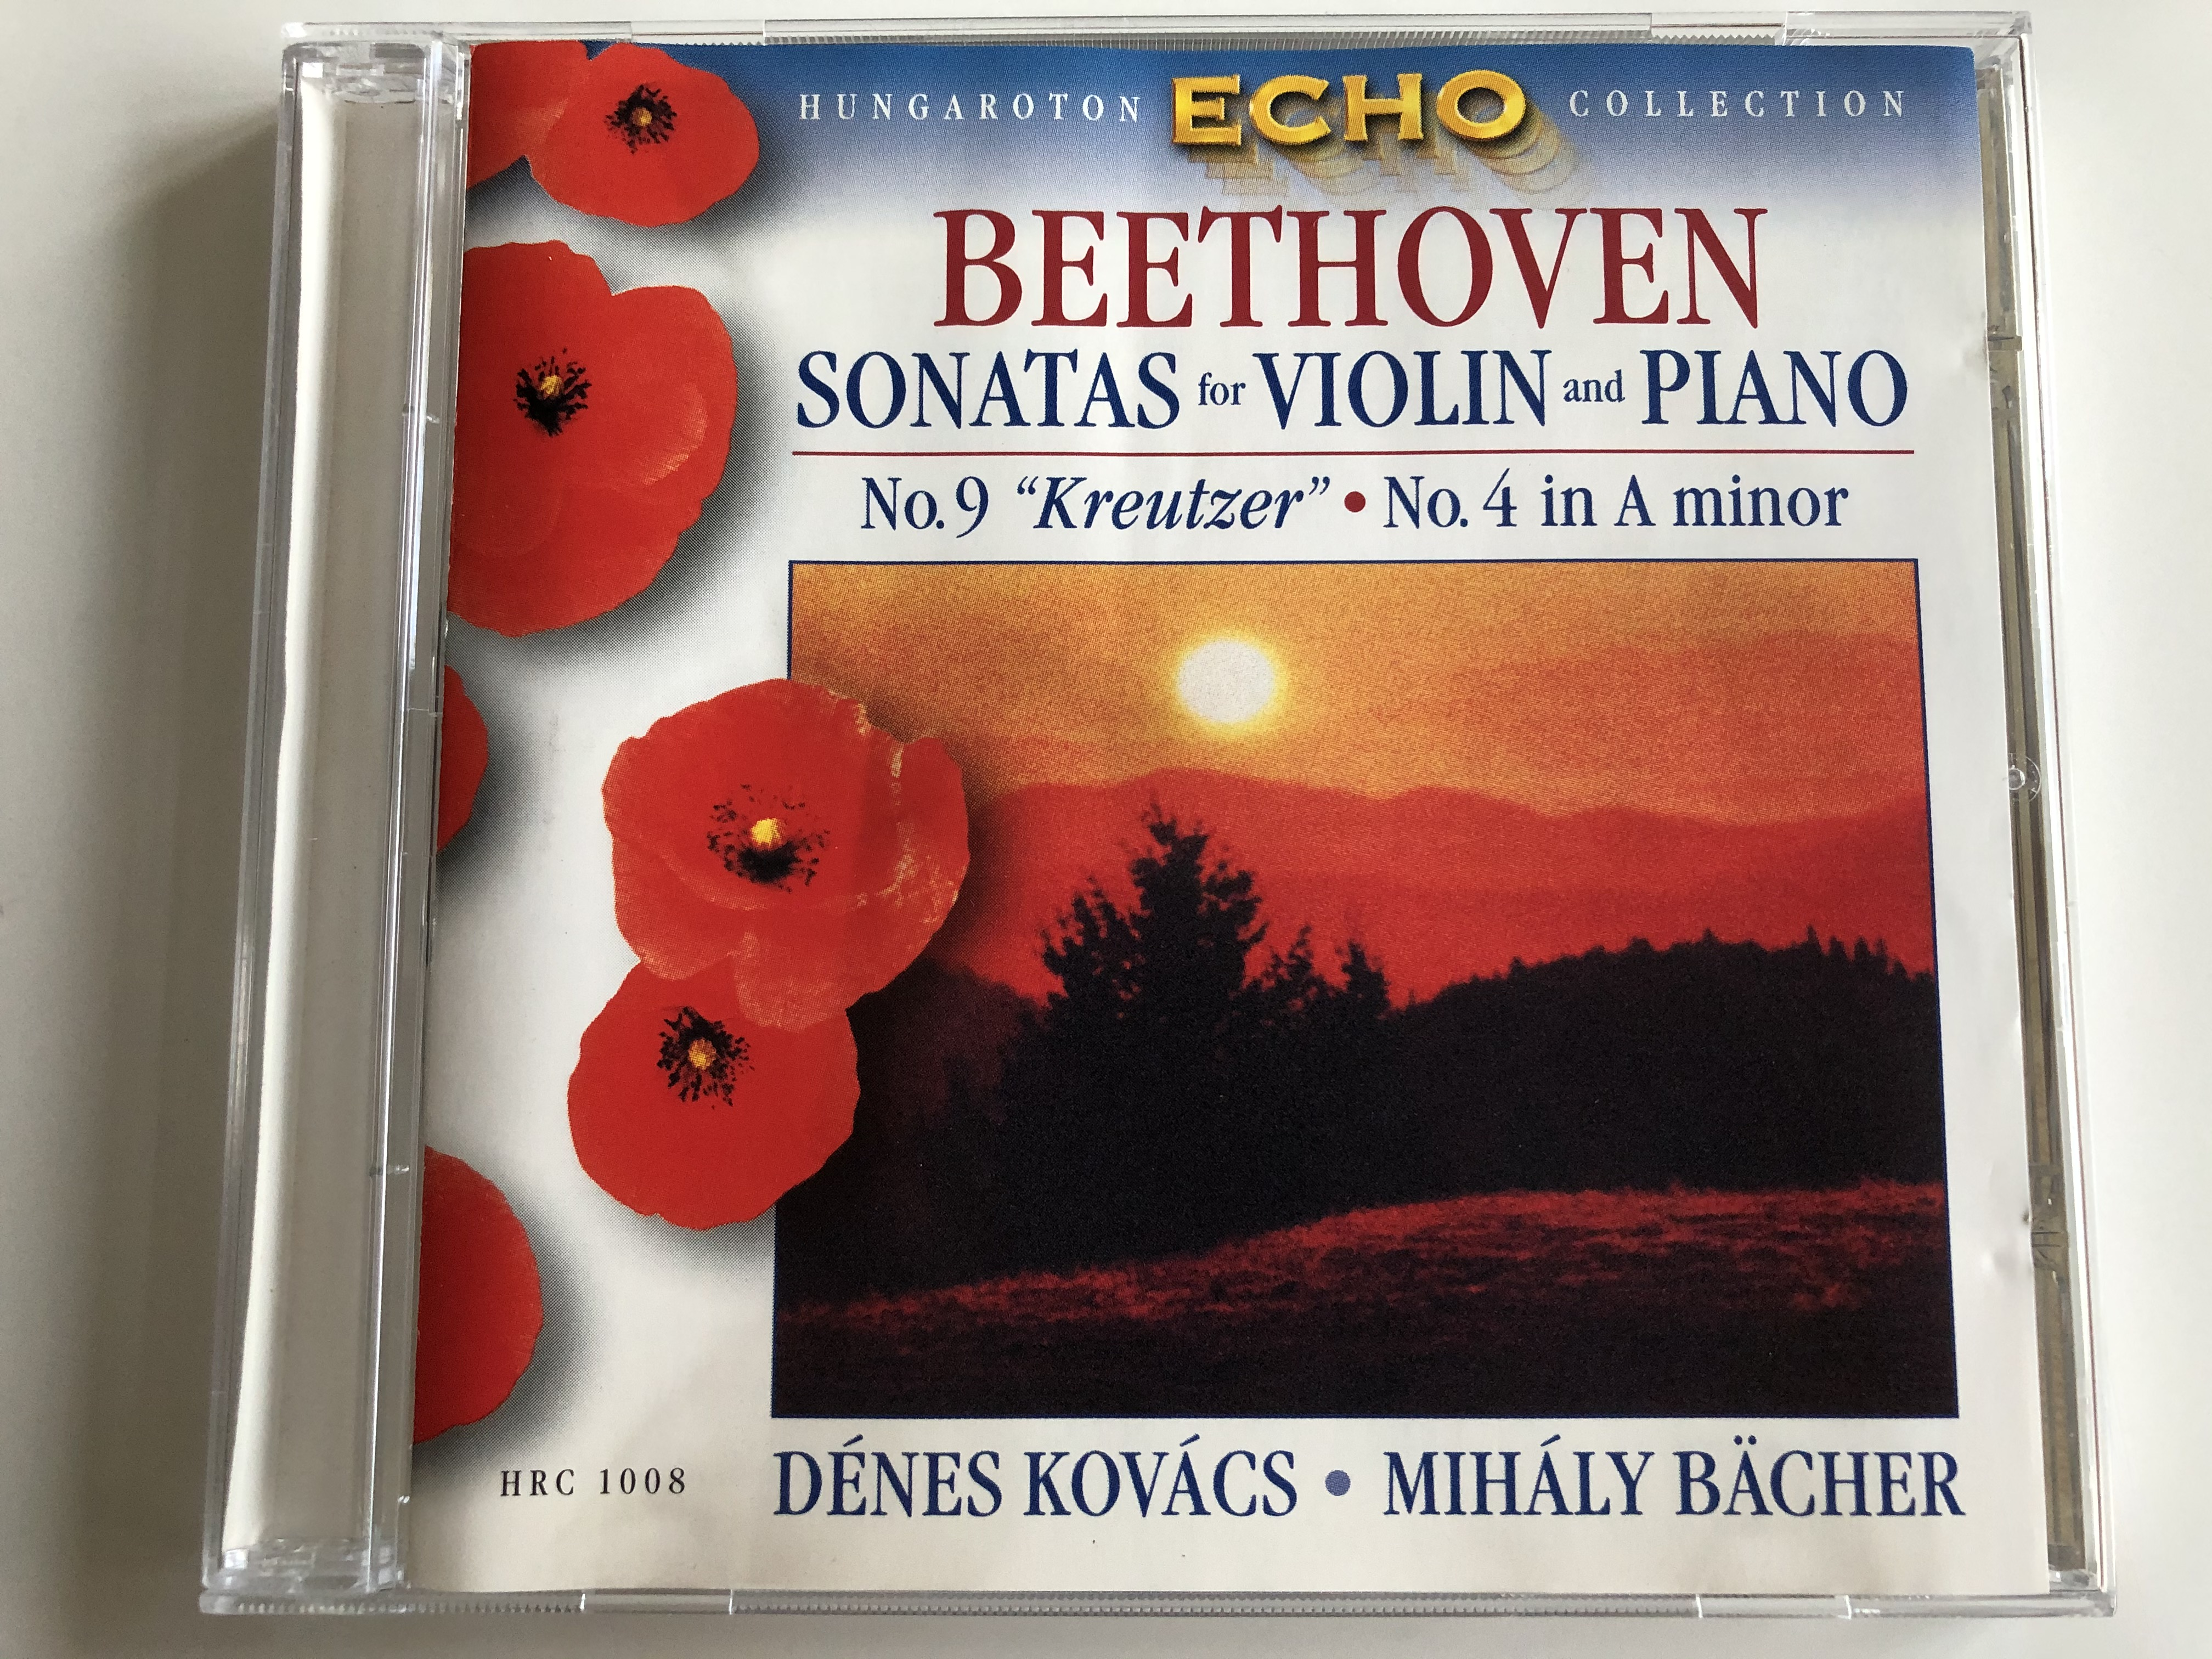 beethoven-sonatas-for-violin-and-piano-no.-9-kreutzer-no.-4-in-a-minor-denes-kovacs-mihaly-bacher-hungaroton-classic-audio-cd-1963-stereo-hrc-1008-1-.jpg